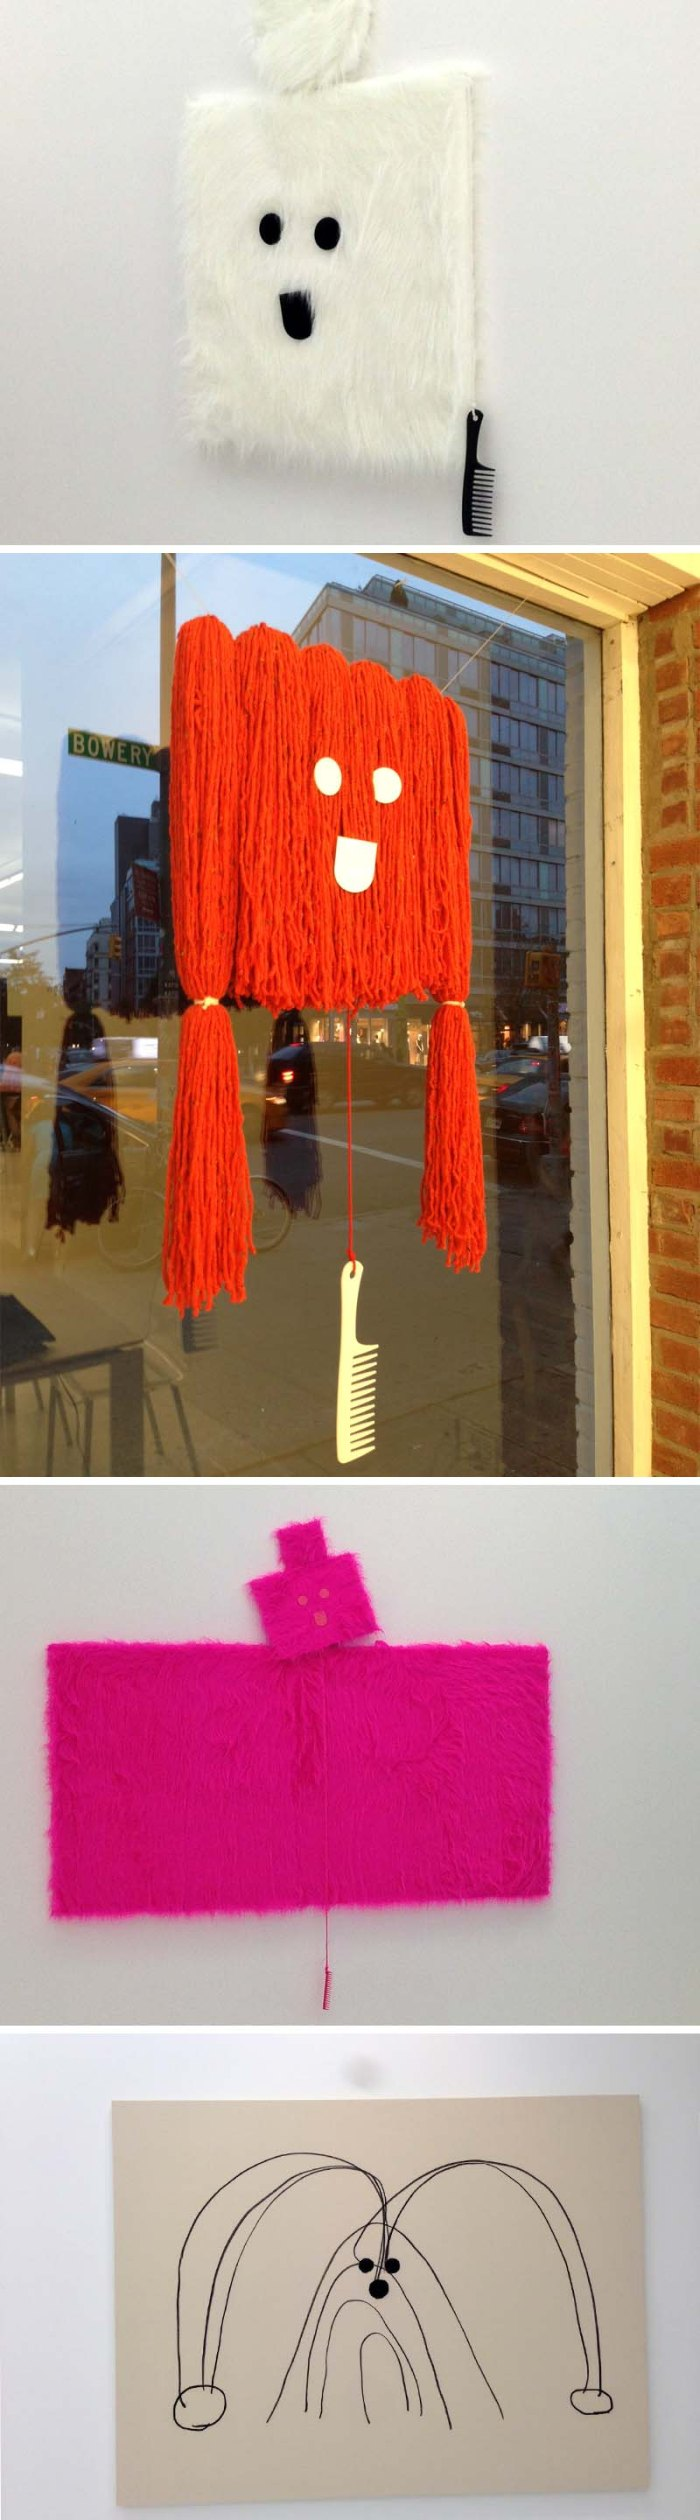 Misaki Kawai, The Hair Show, The Hole Gallery, fun, hairy sculptures